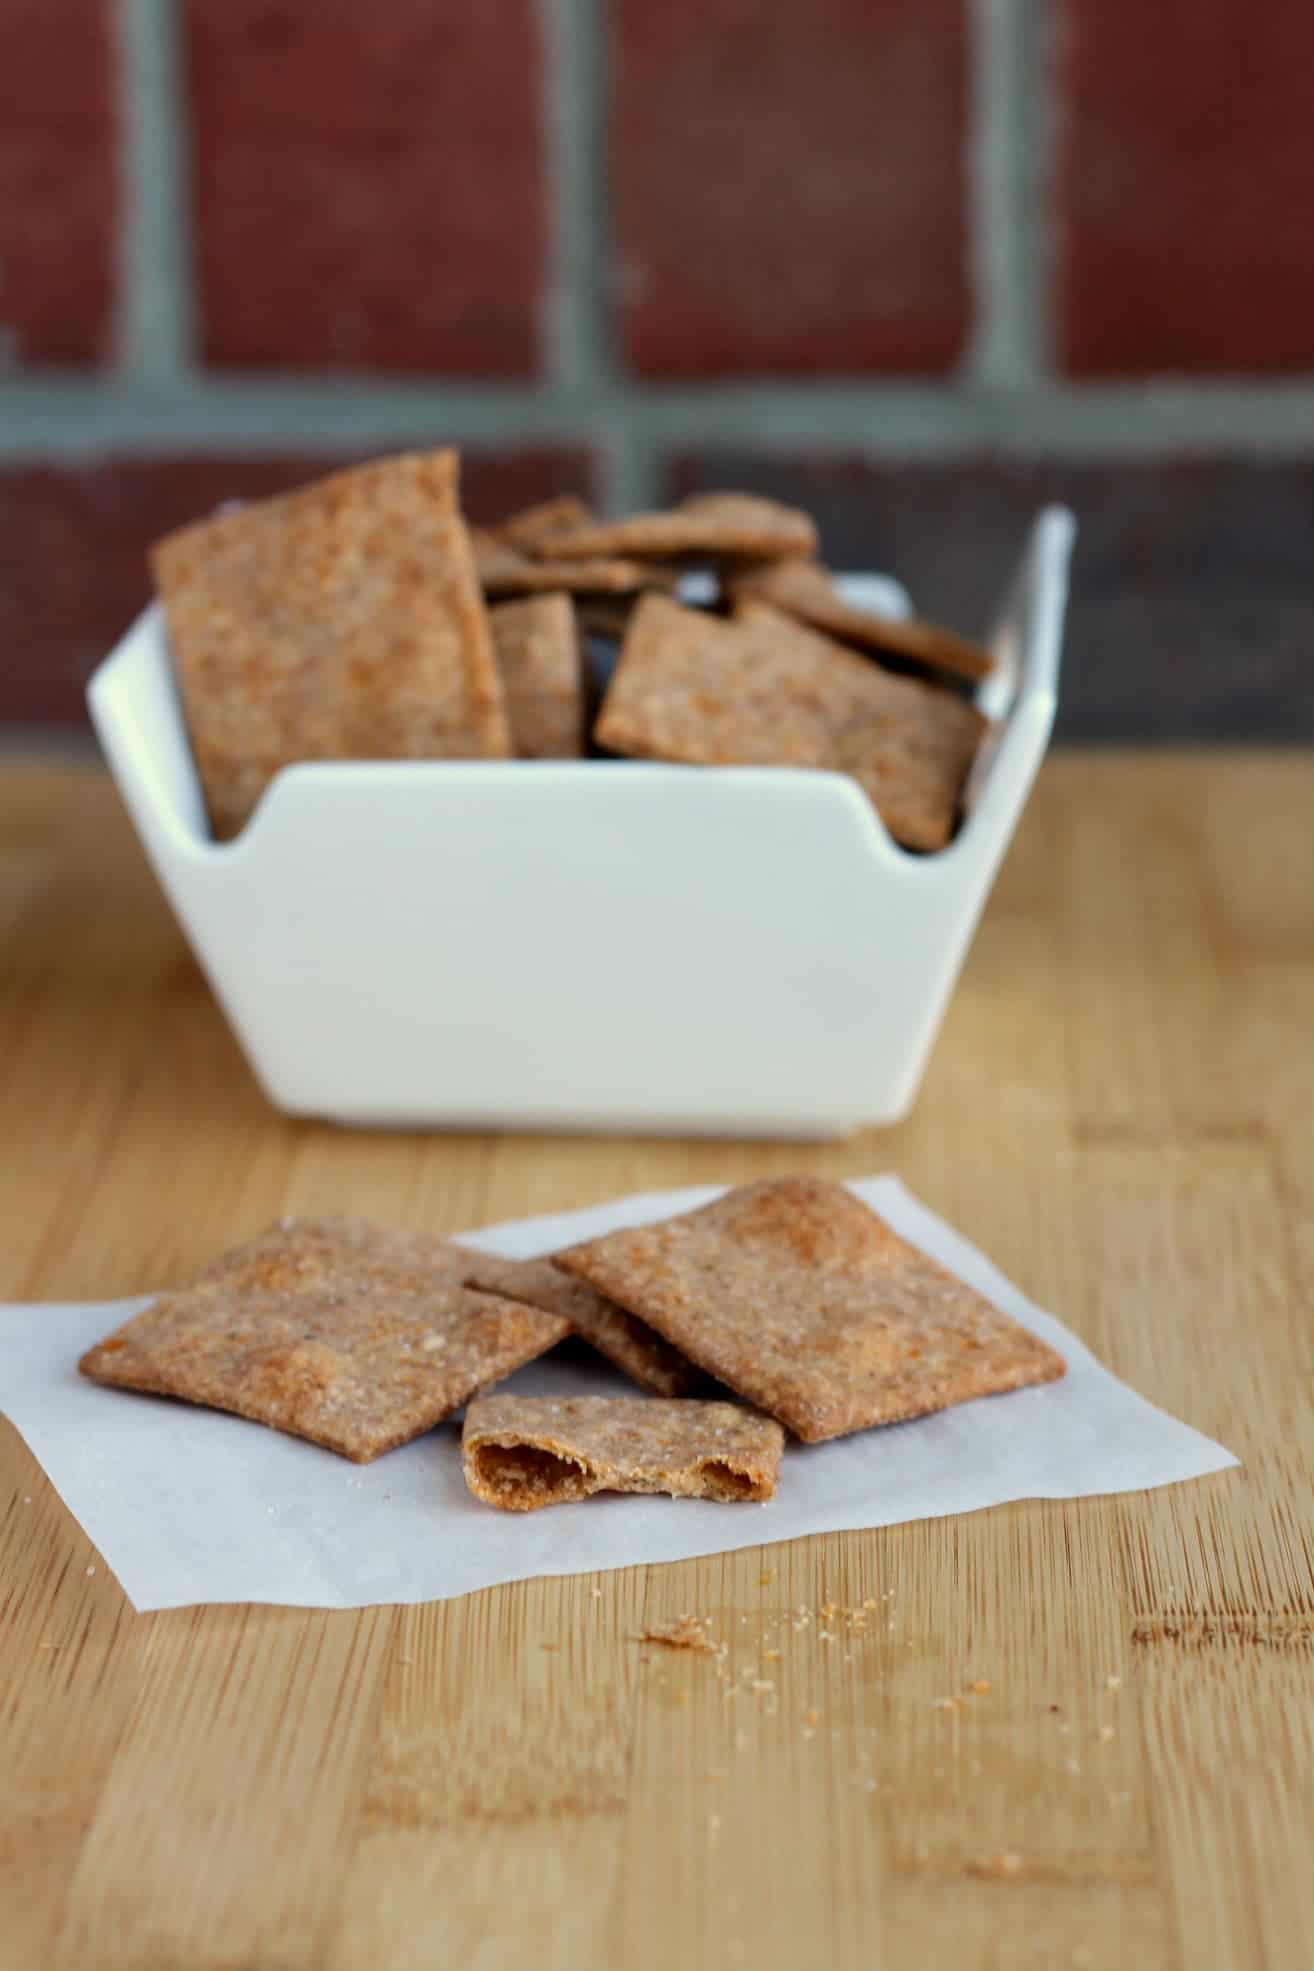 A handful of crackers on white paper with a bowl of wheat thins in background.